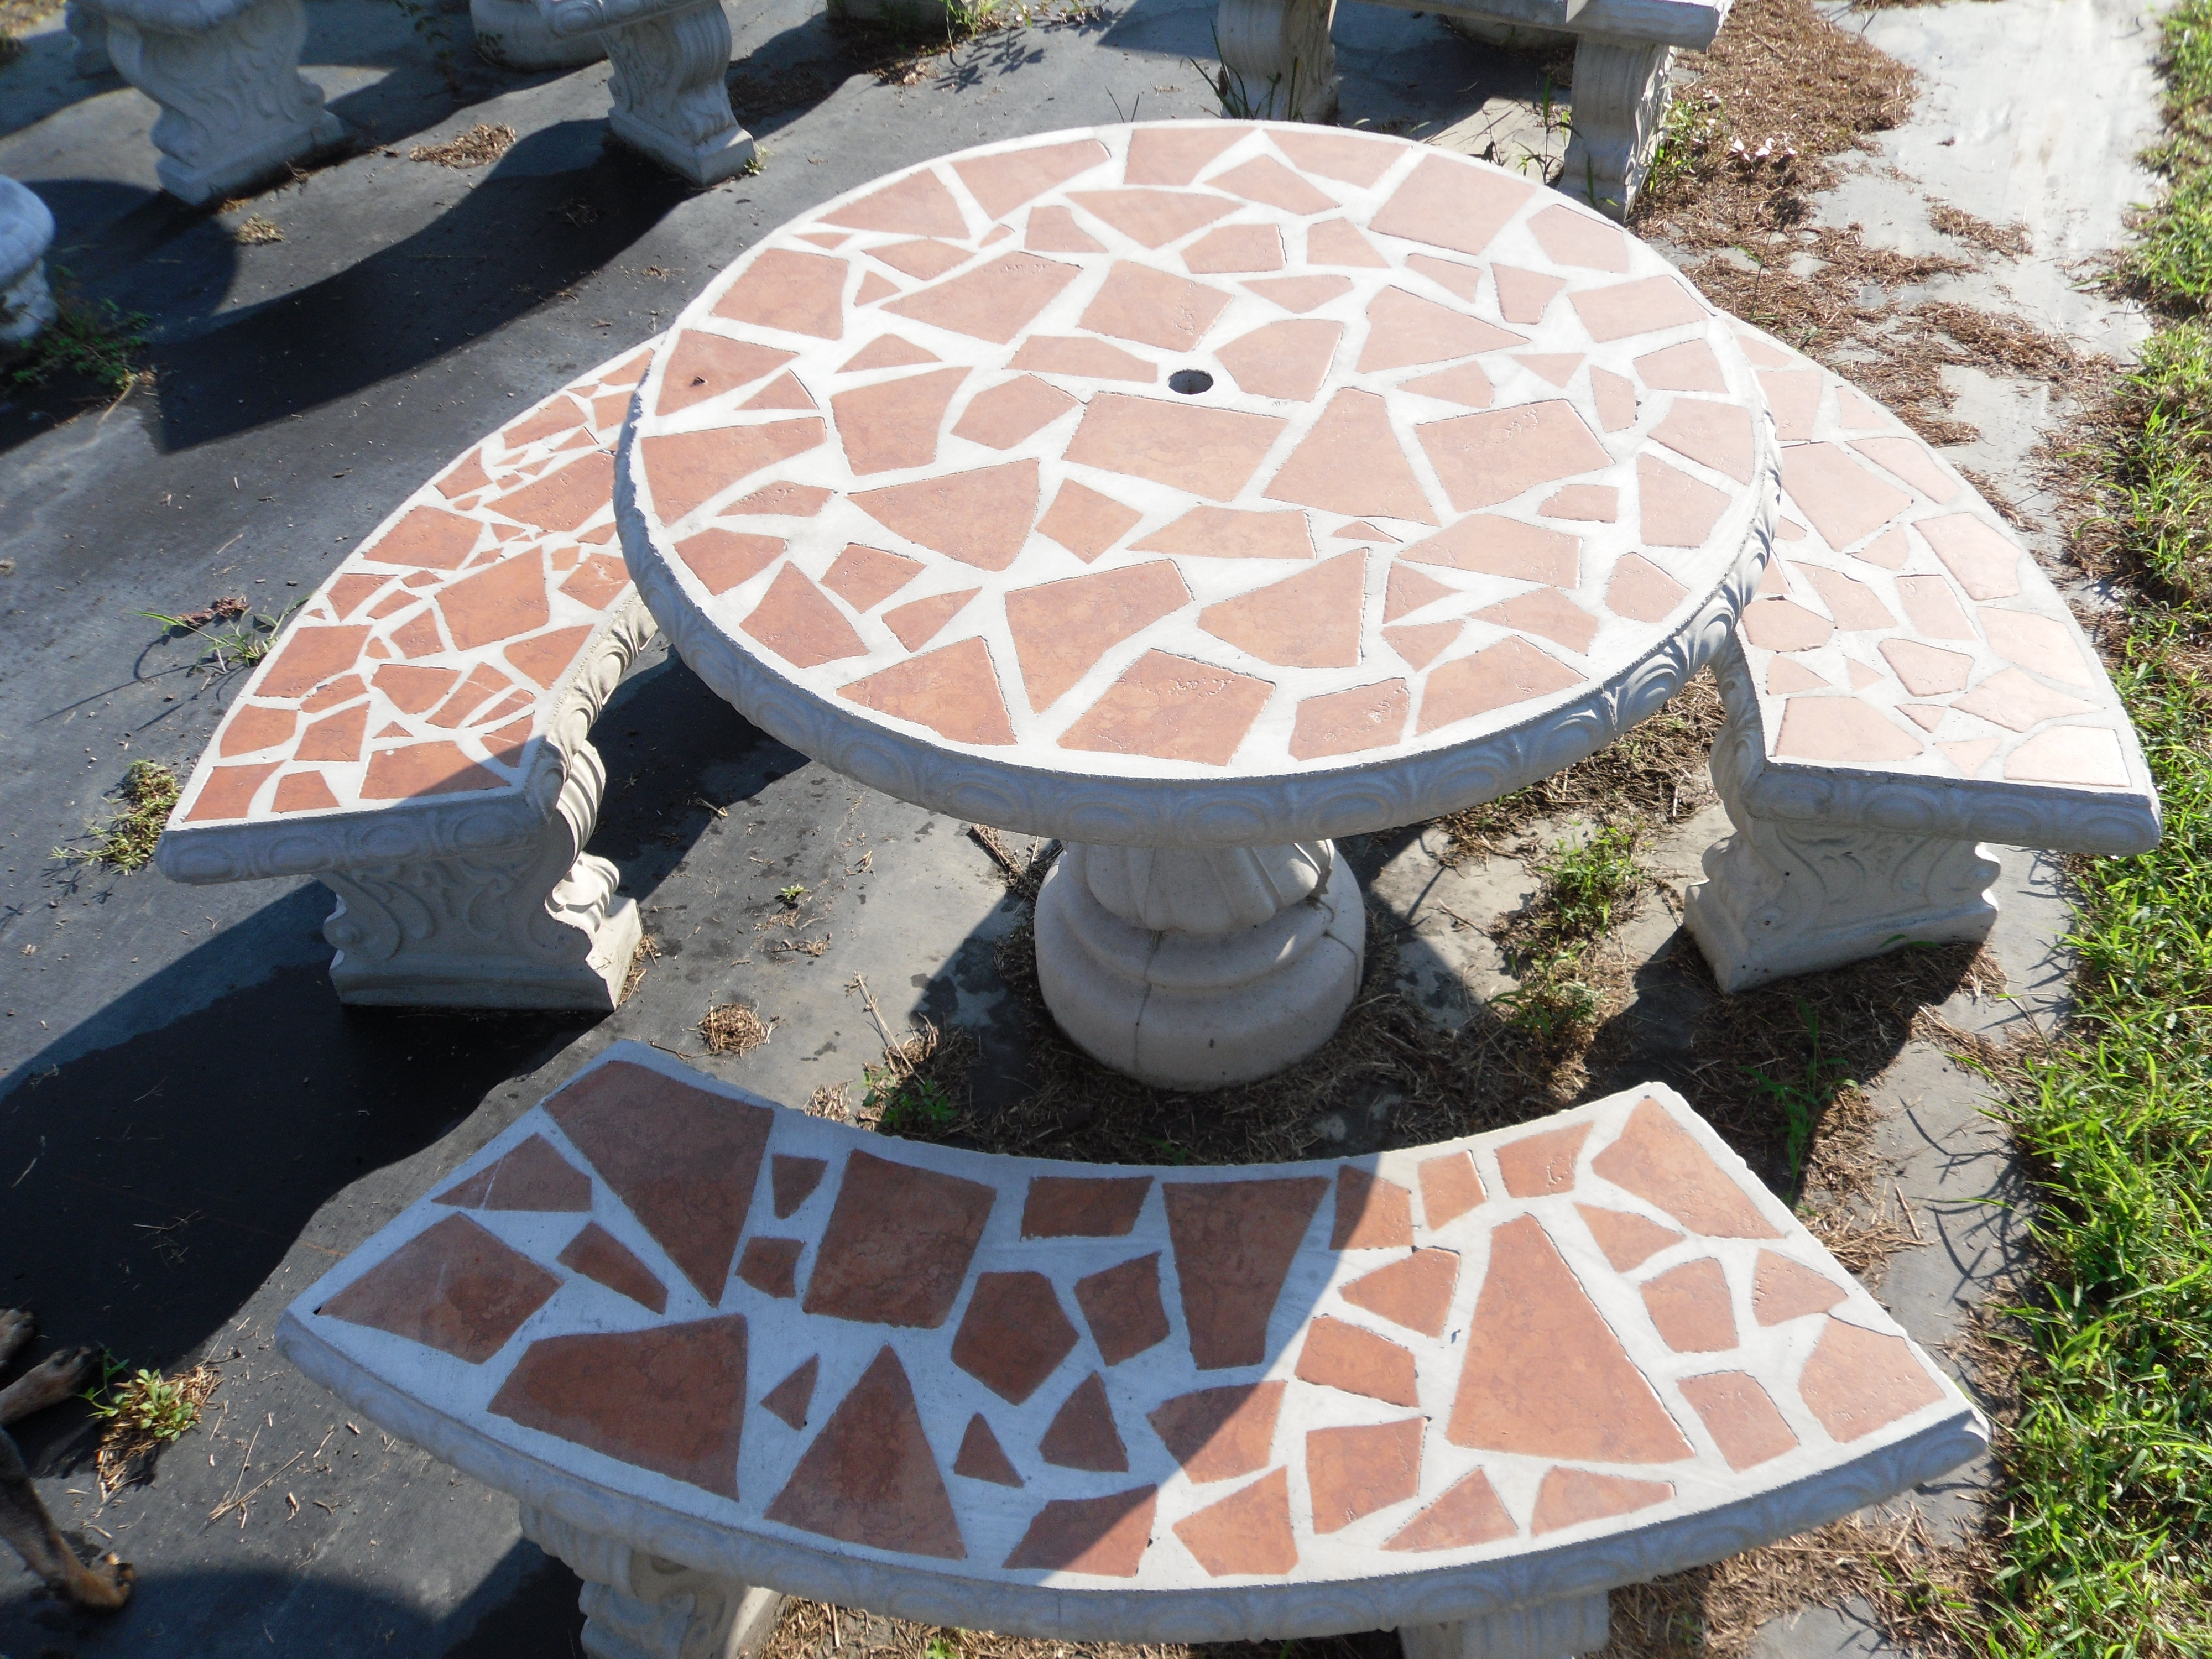 Best ideas about Concrete Patio Table . Save or Pin Patio Table Sets The Cement Barn Manufacturers of Now.